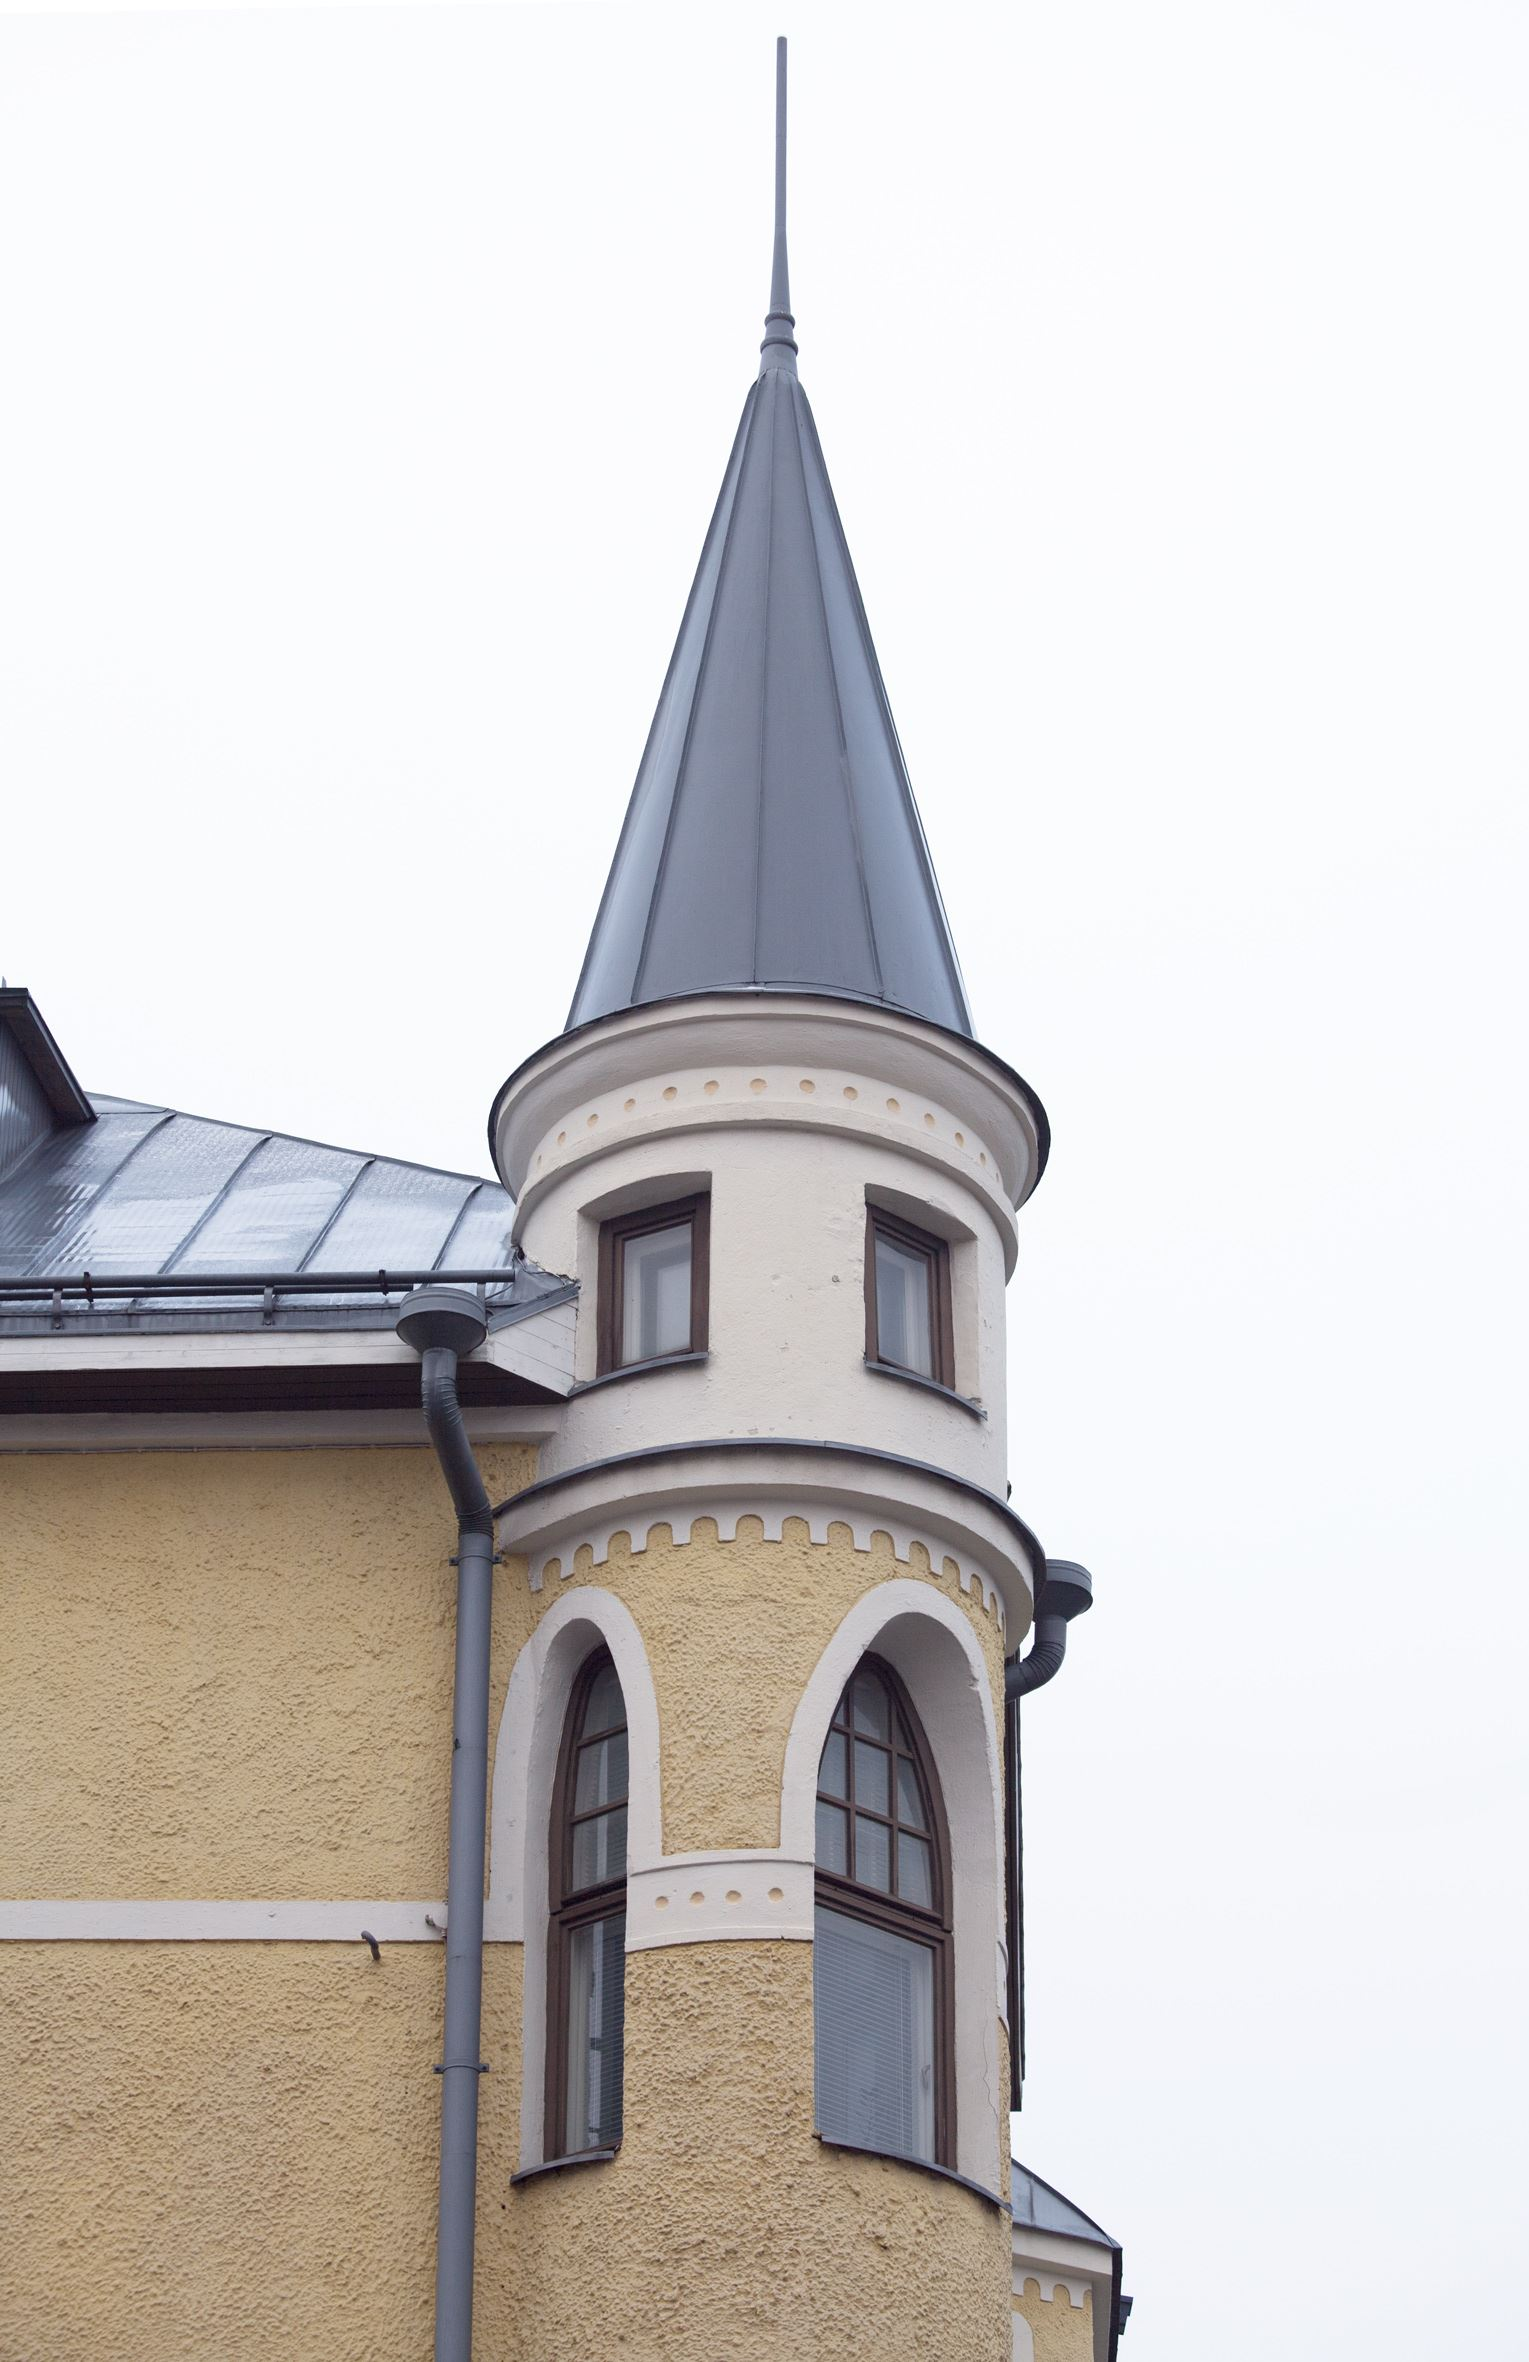 Finnish Architecture in Lahti: Jugend buildings and houses | LAHTI CITY MUSEUM